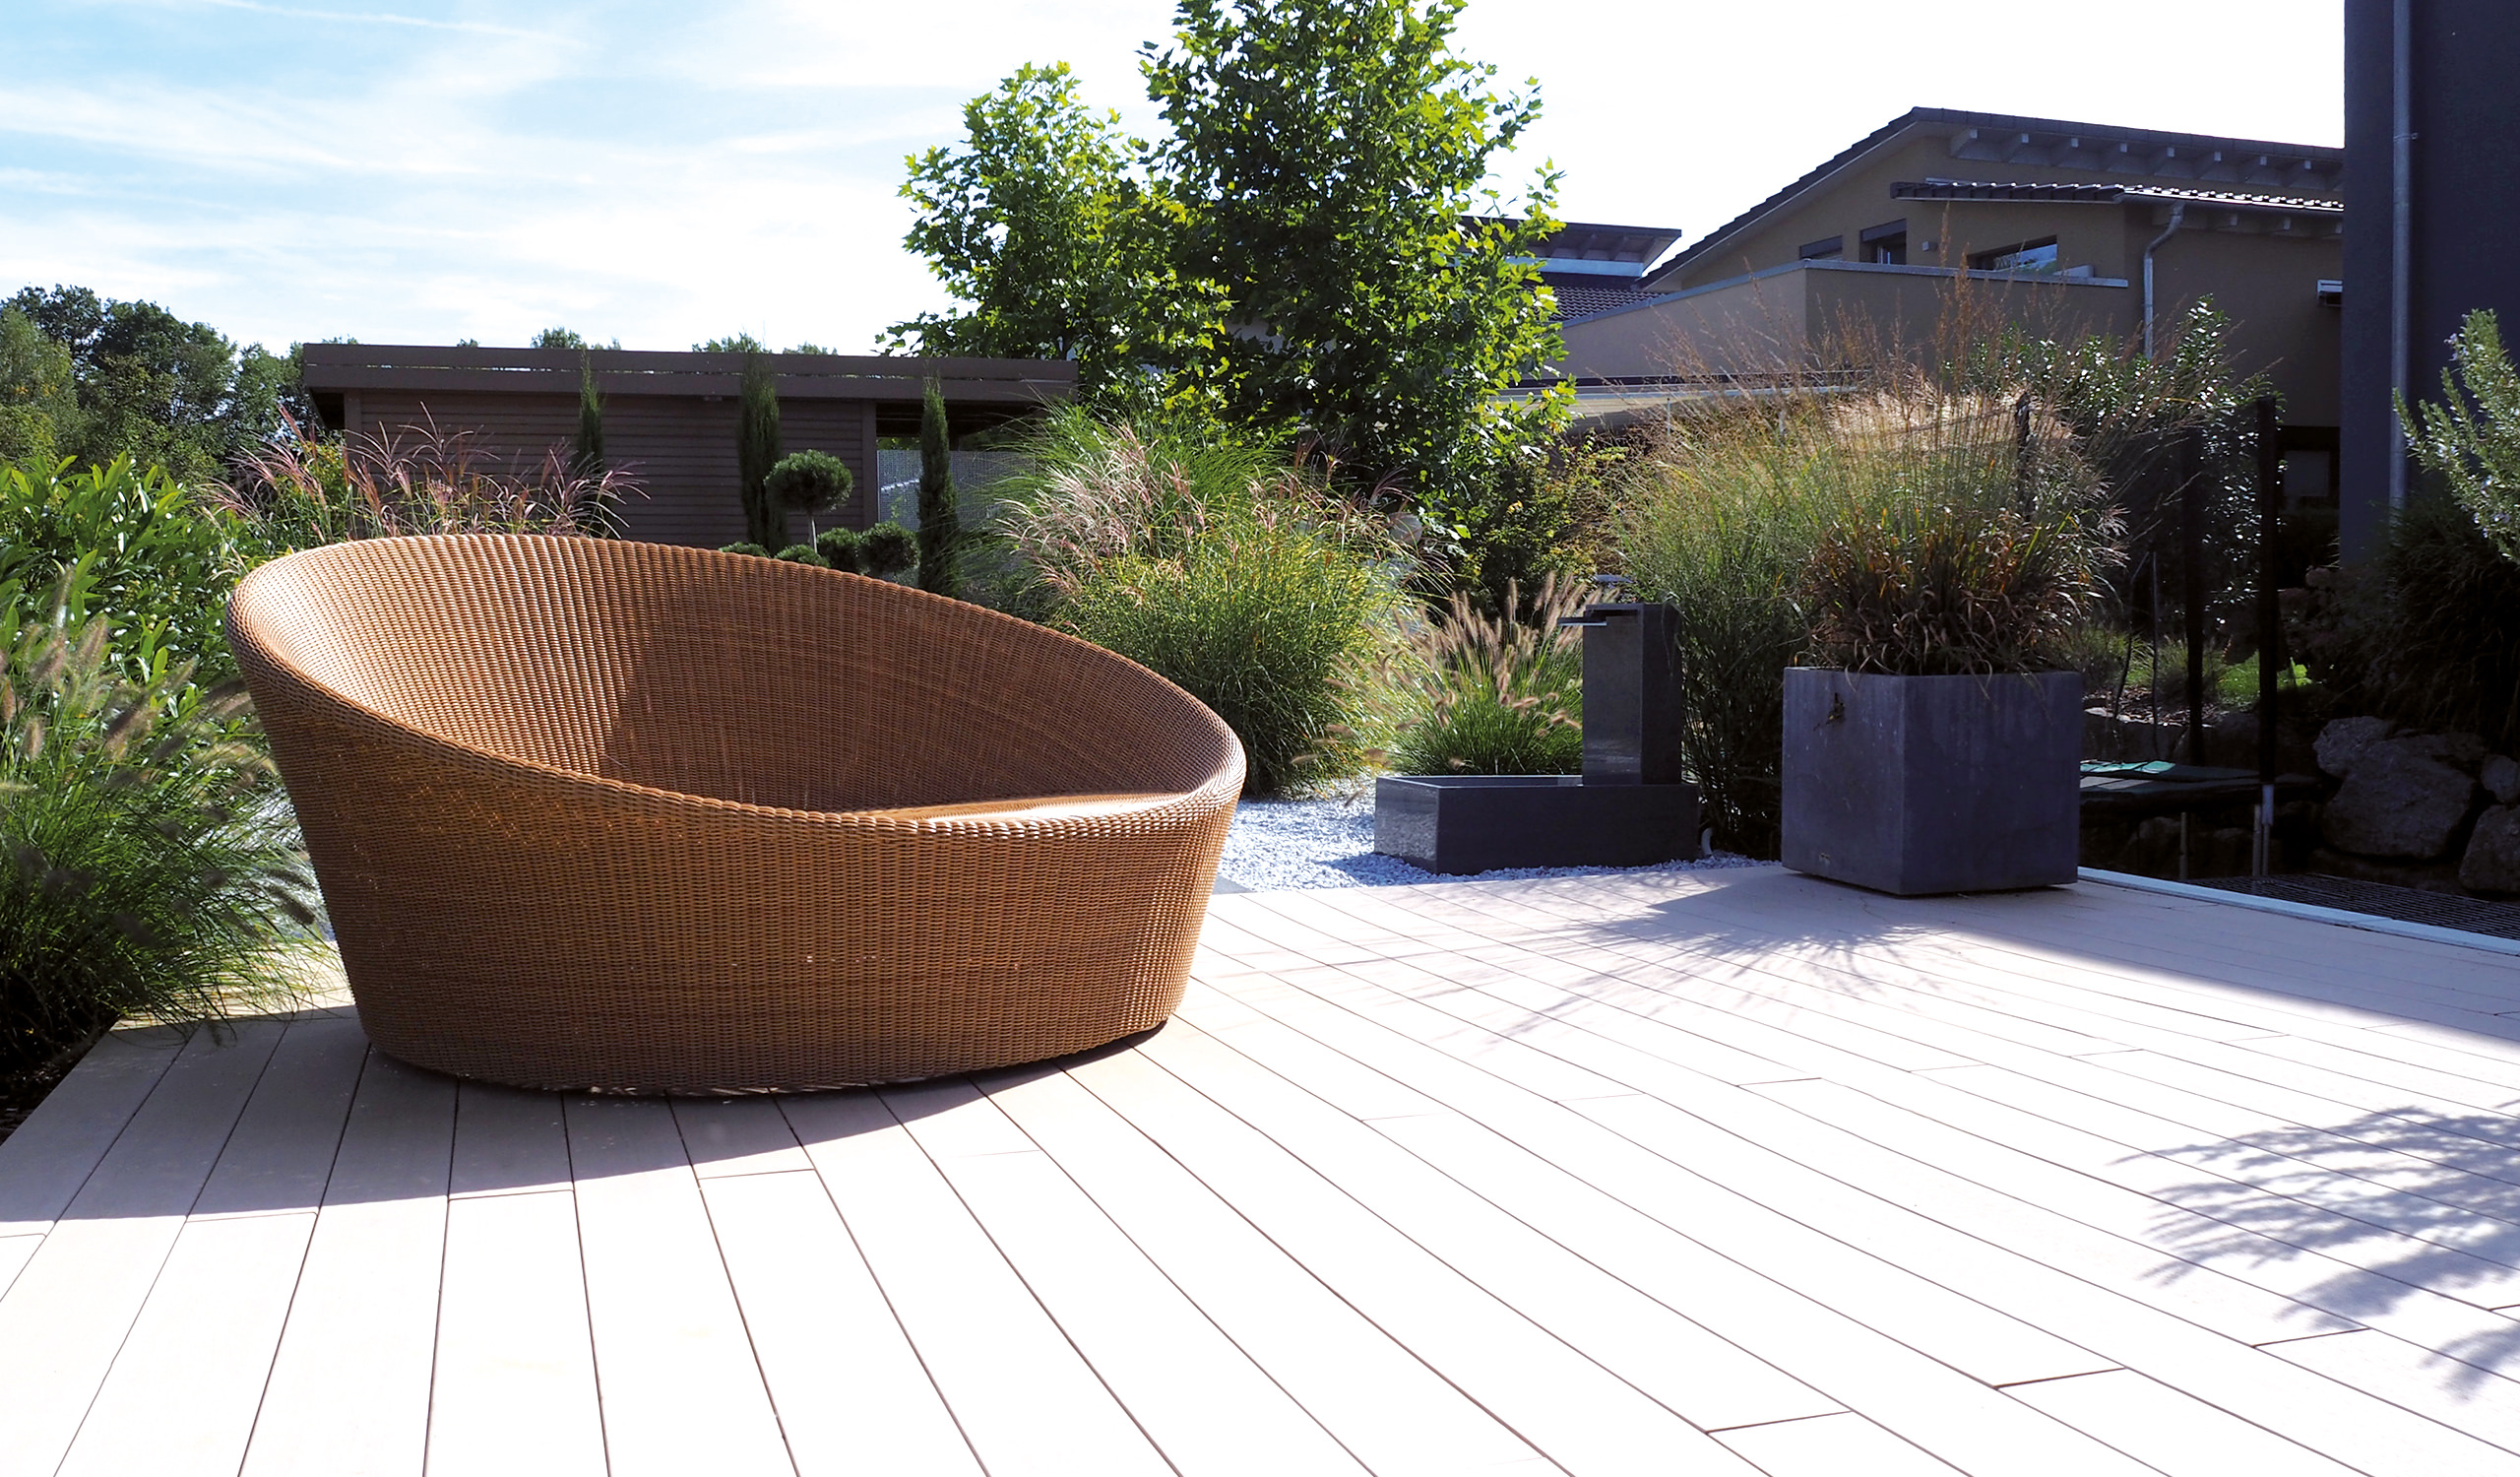 Outdoor terrace construction with verando floorboards.